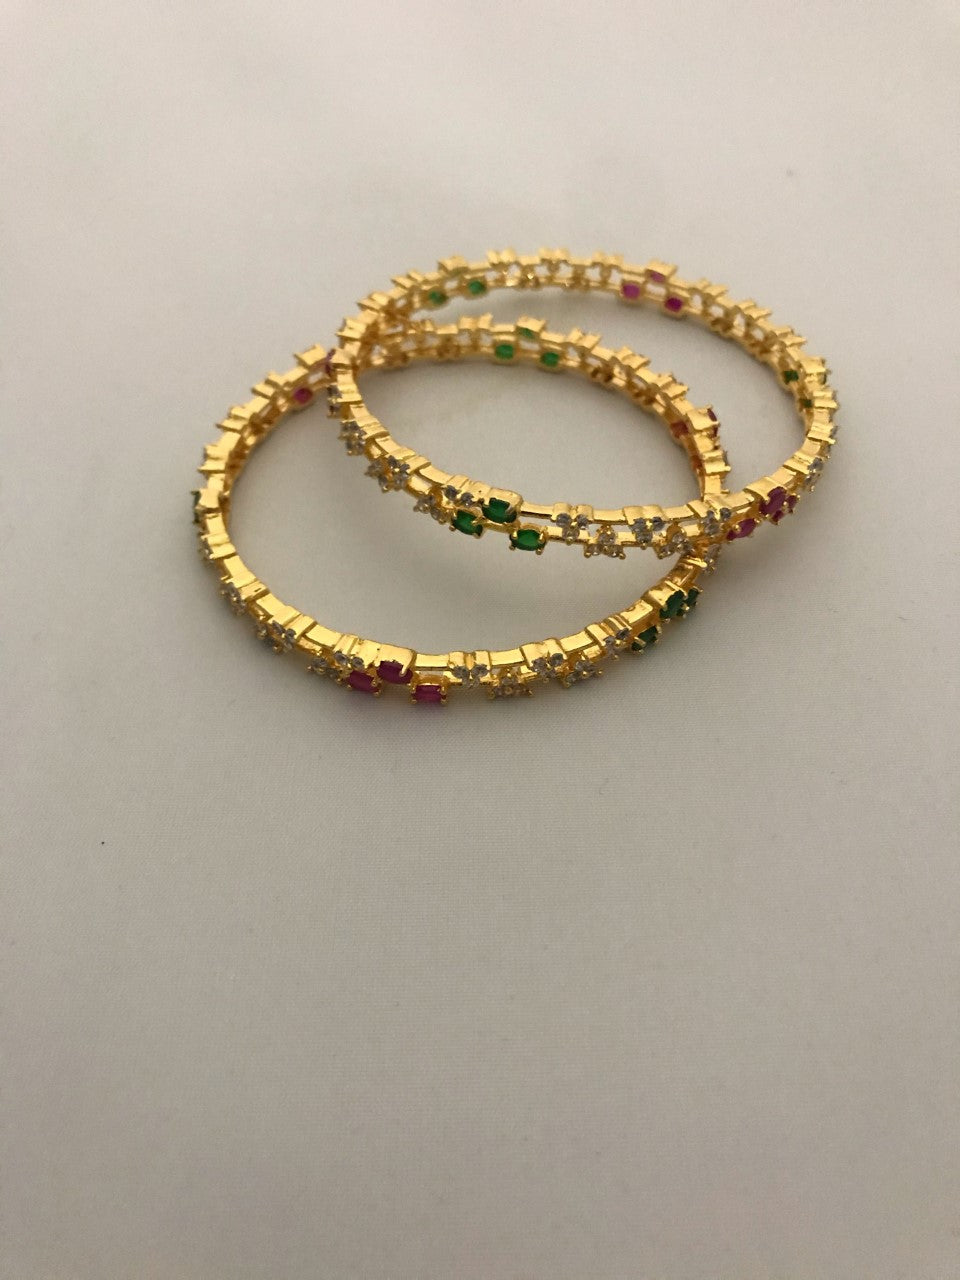 Sri fashion Jewellery Bangles - Green/Pink/White Stones